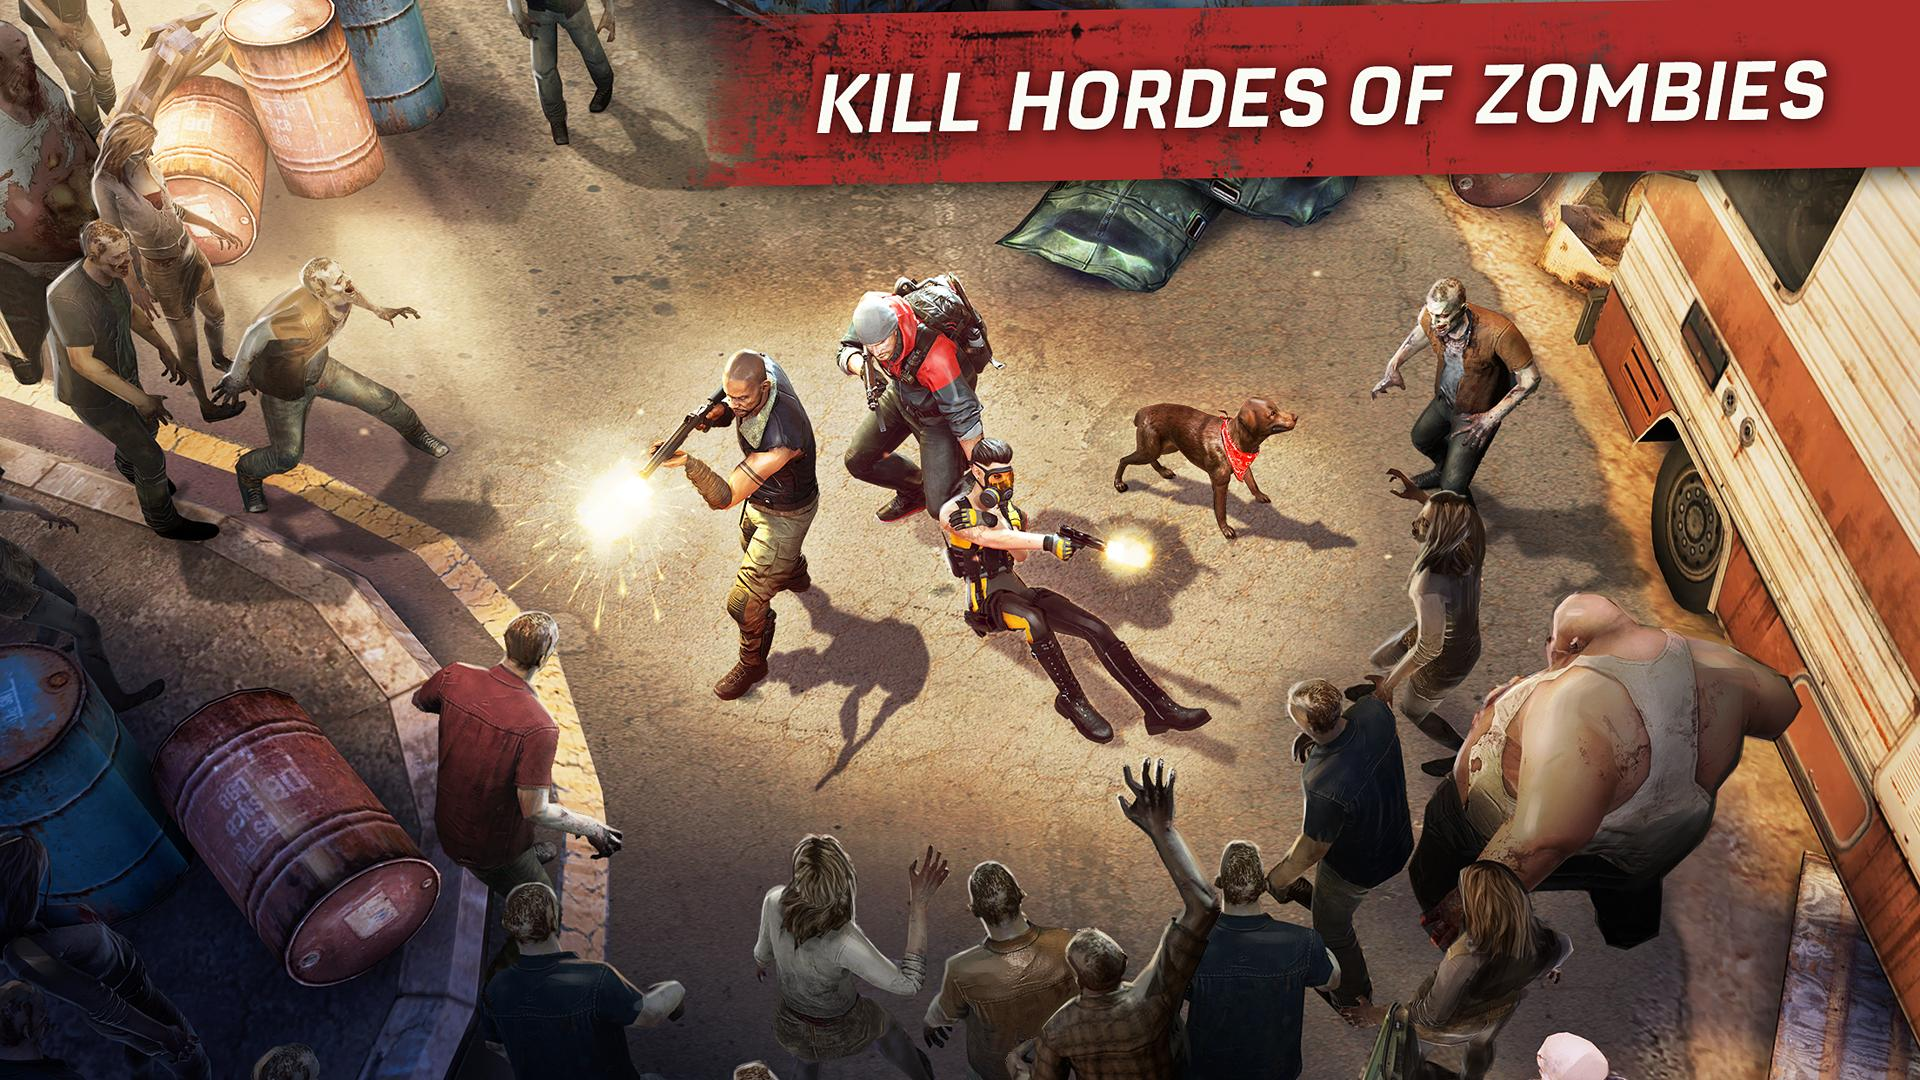 Left to Survive for Android - APK Download